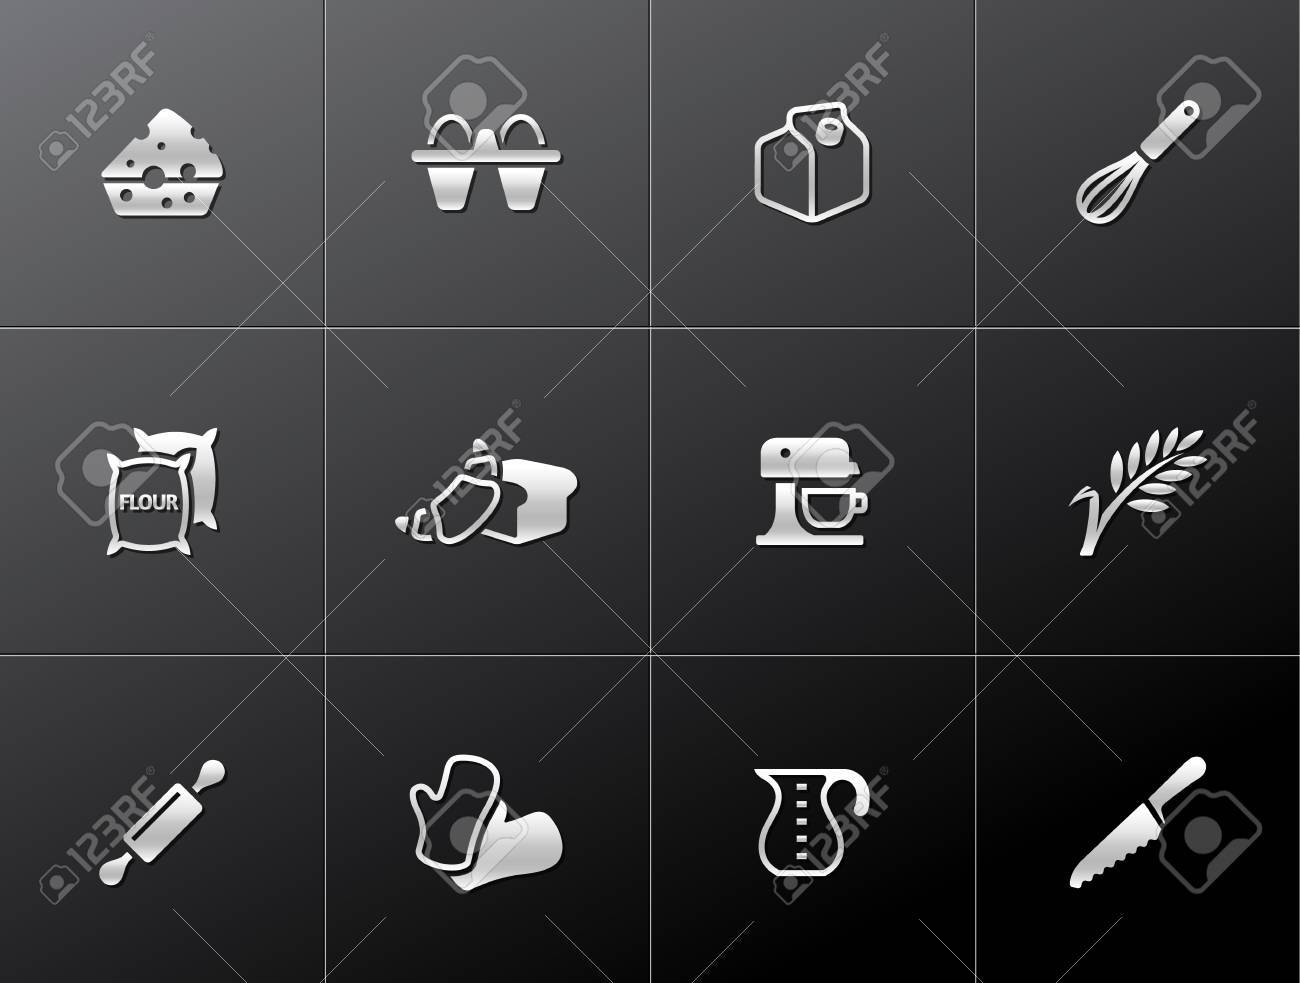 Baking icons in metallic style. EPS 10. Stock Vector - 23775140